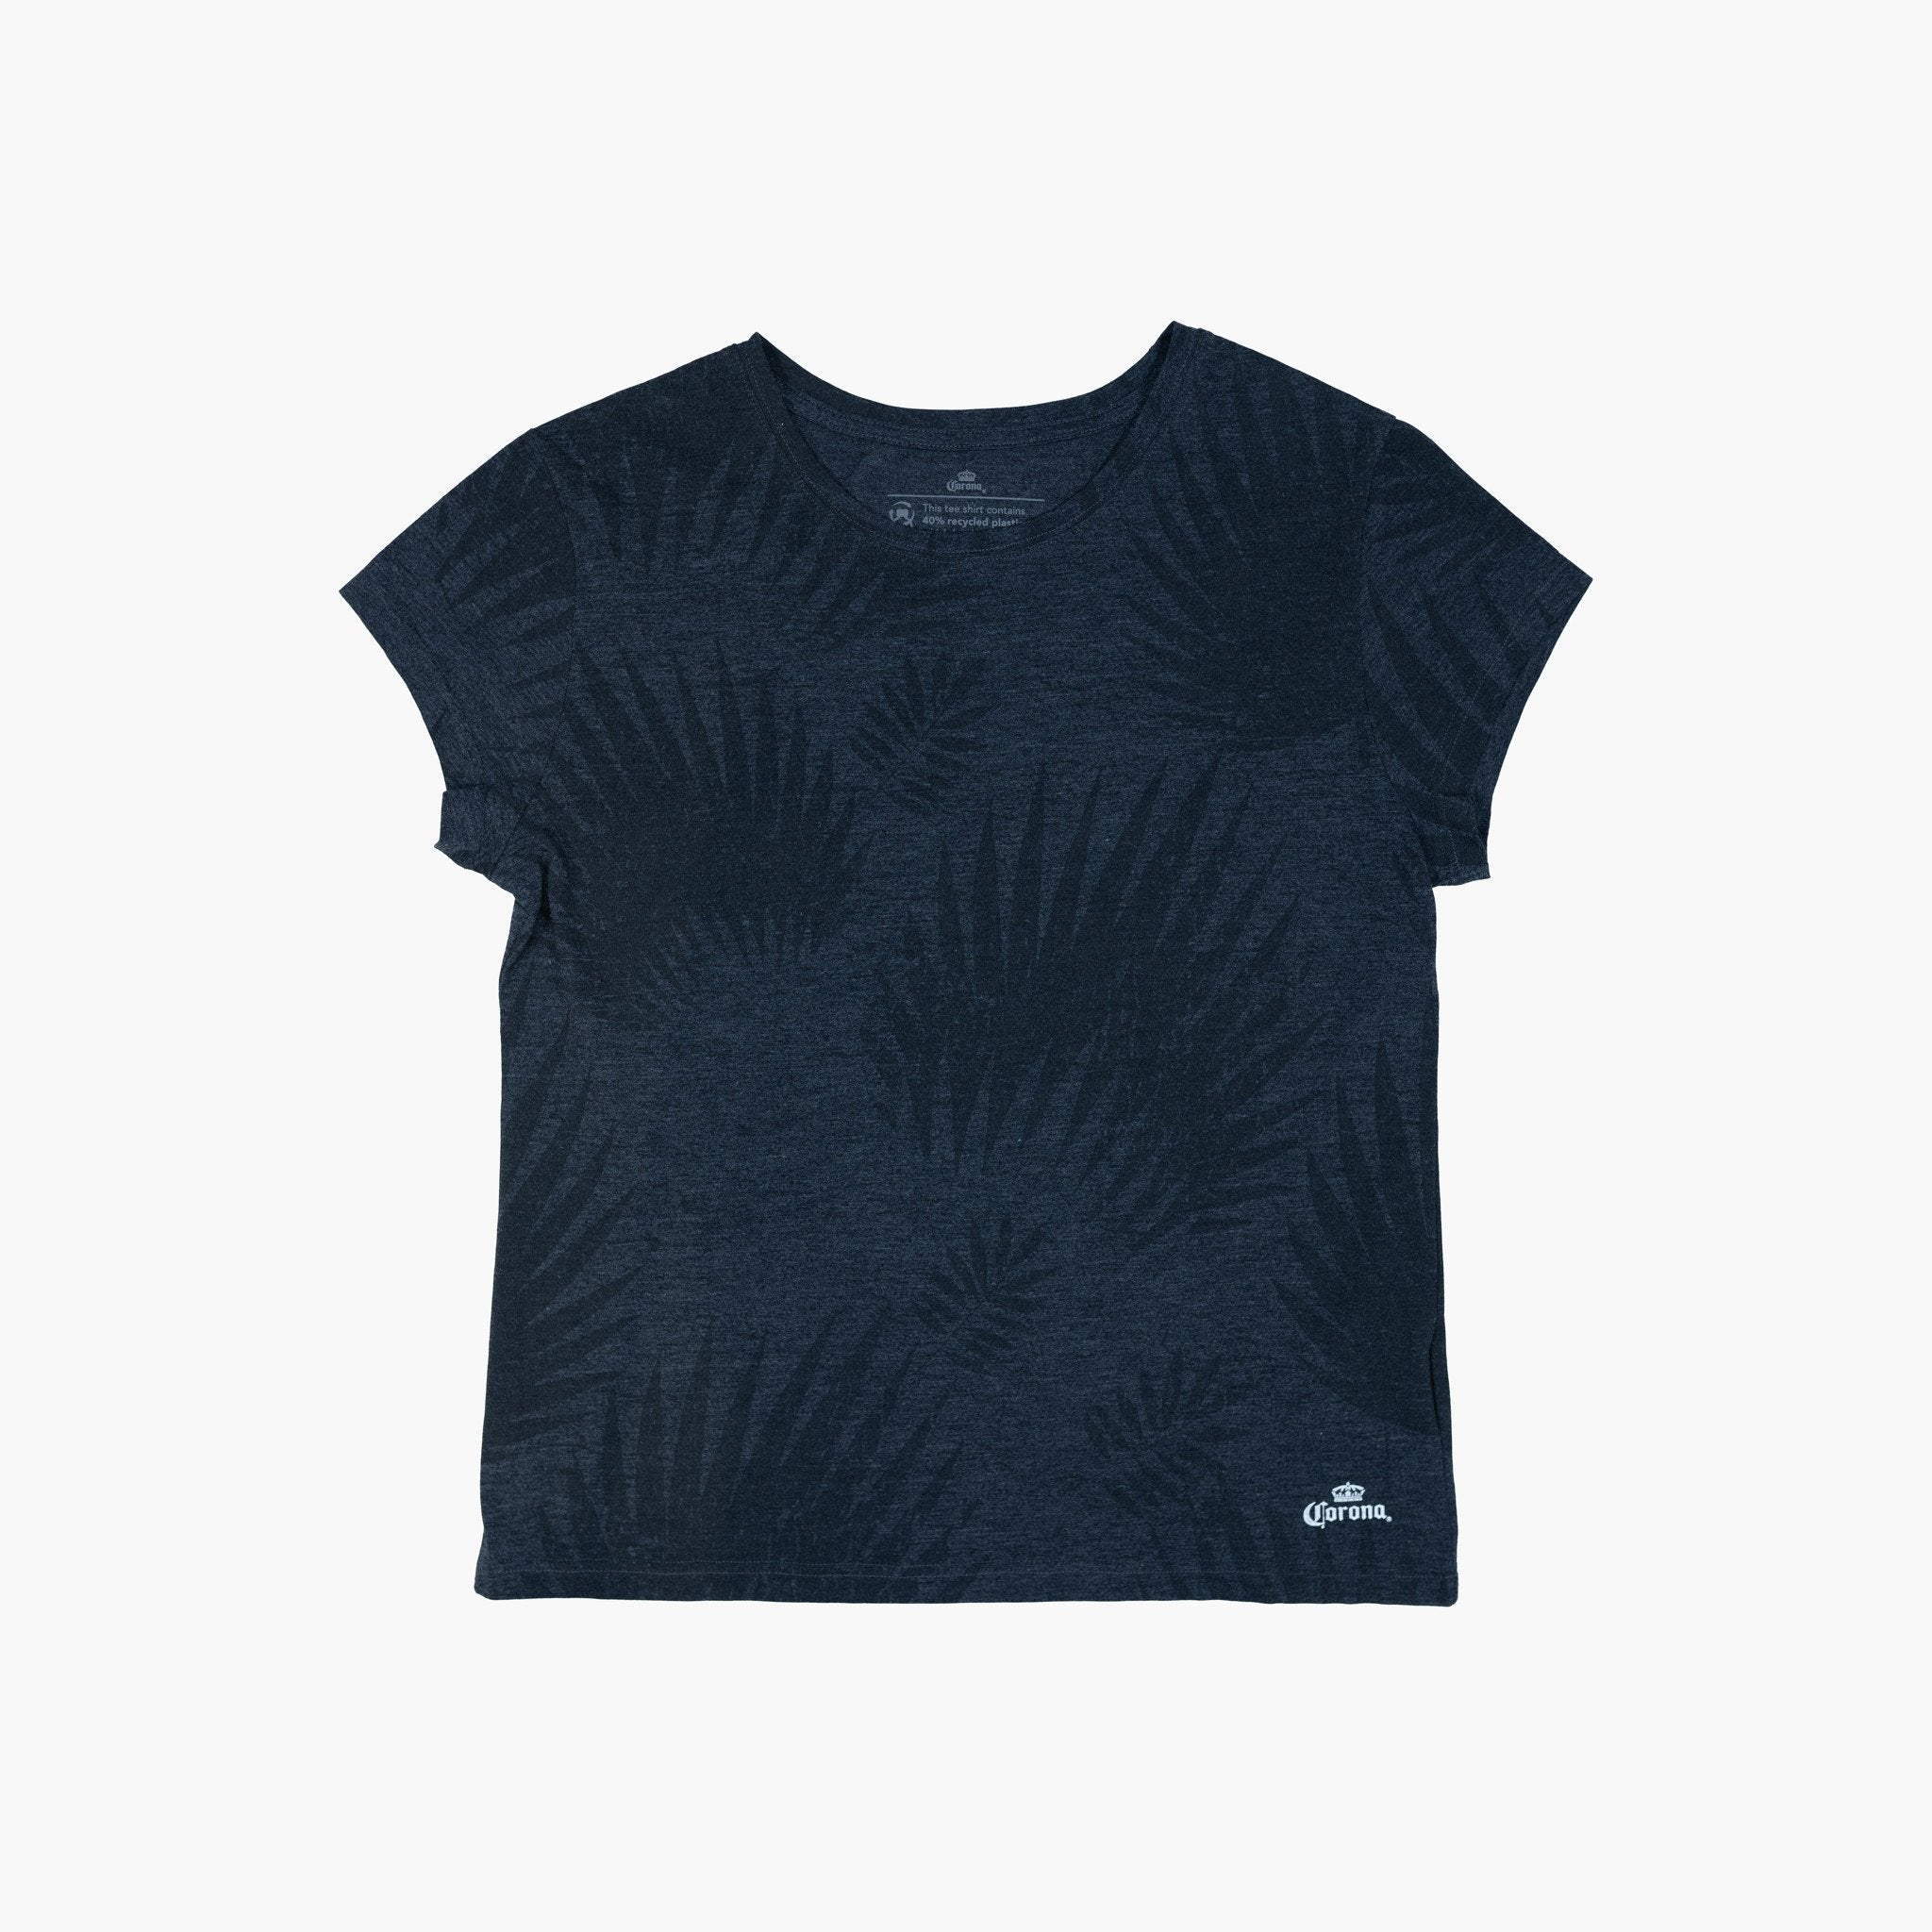 Women's Paradise Tee - Charcoal Heather